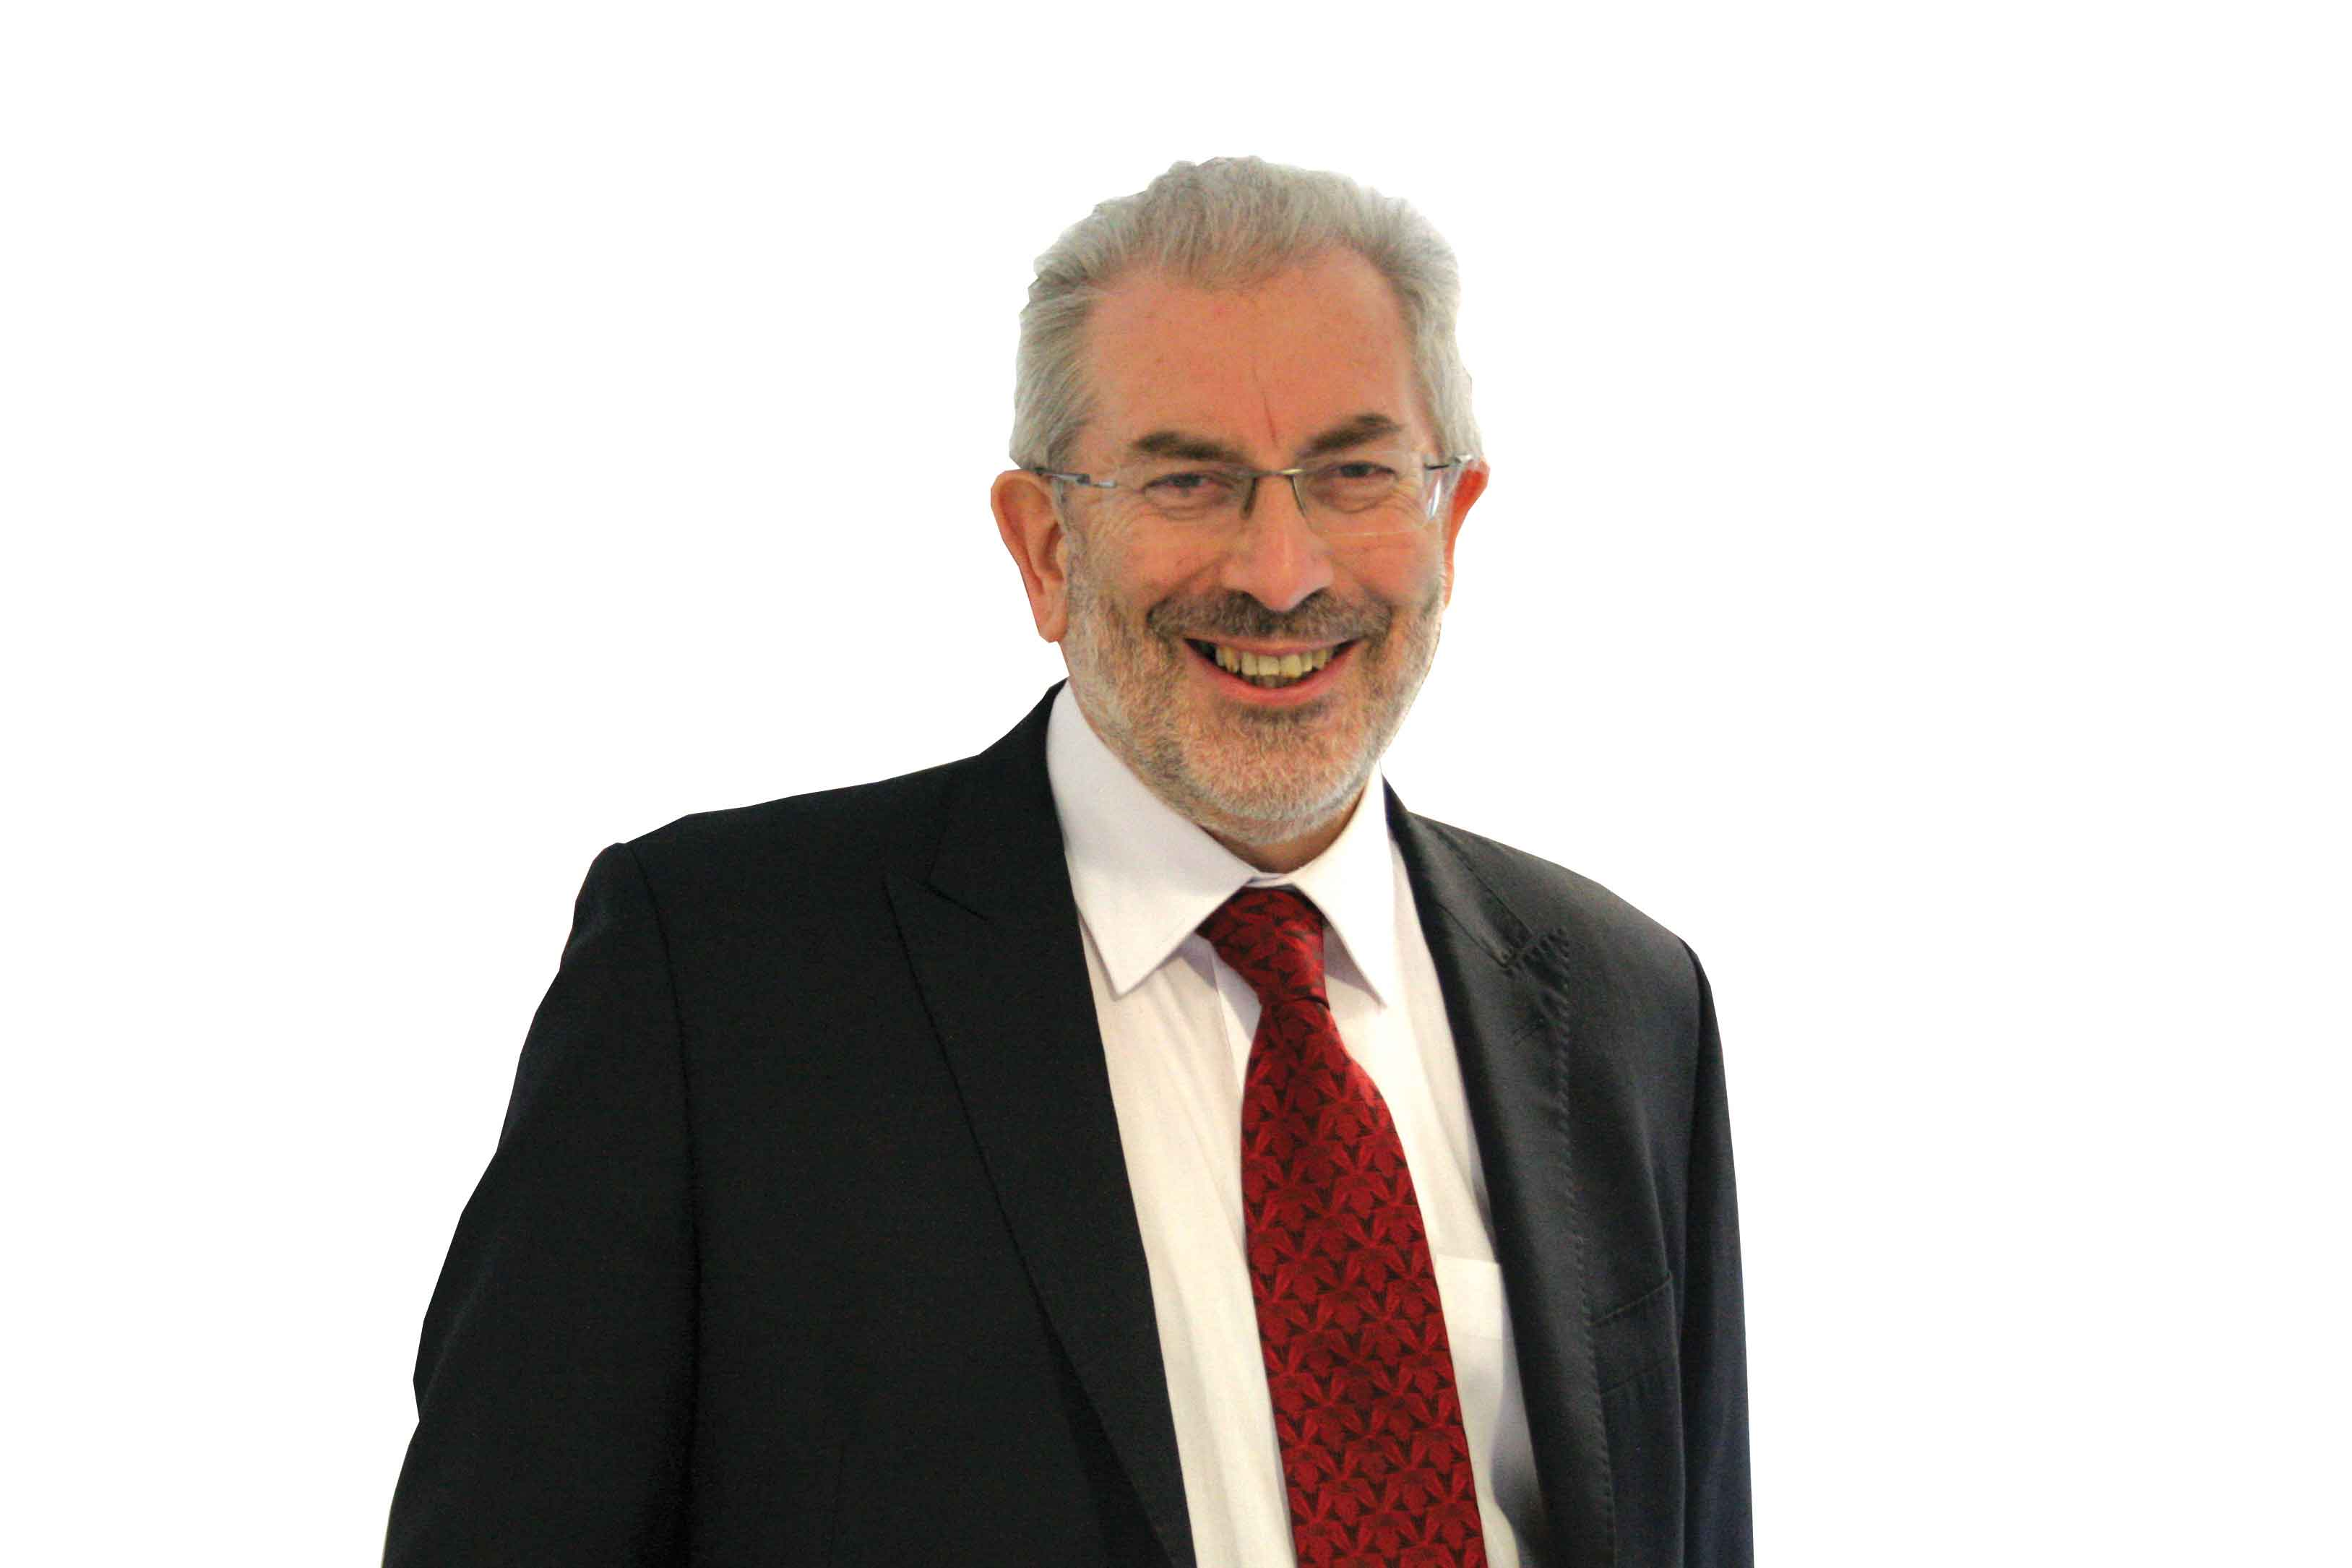 Lord-Bob-Kerslake---headshot-with-white-background